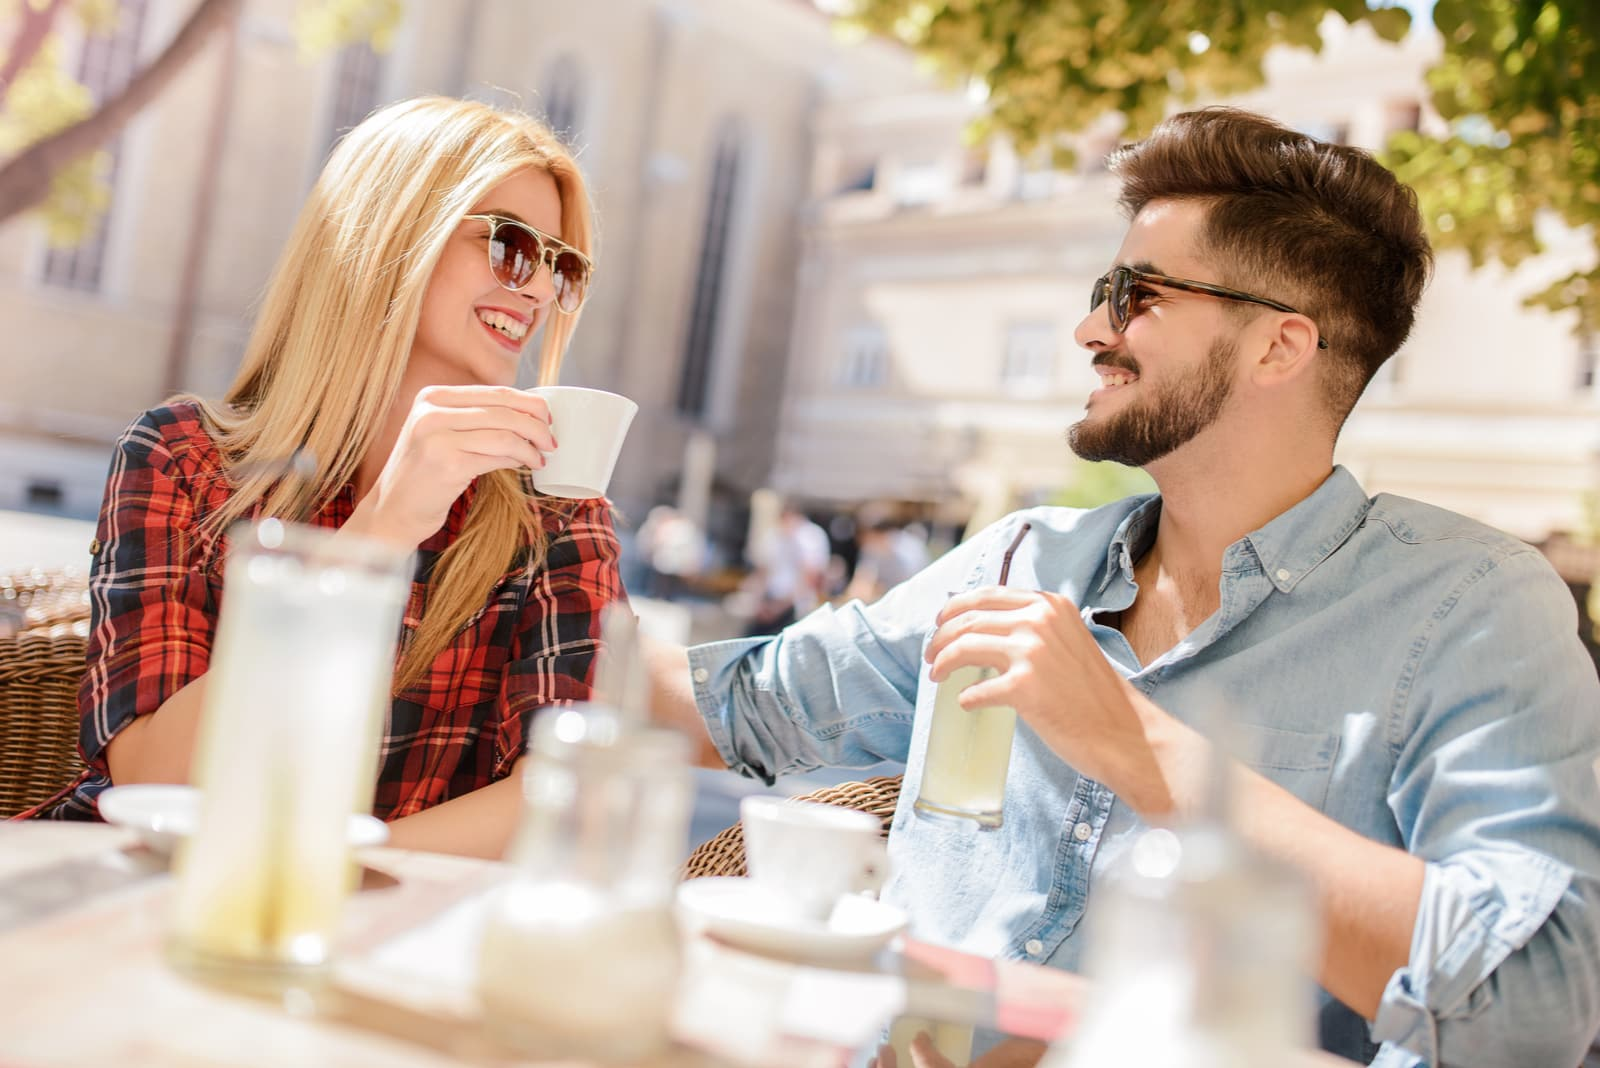 a man and a woman sit at a table and laugh while drinking coffee